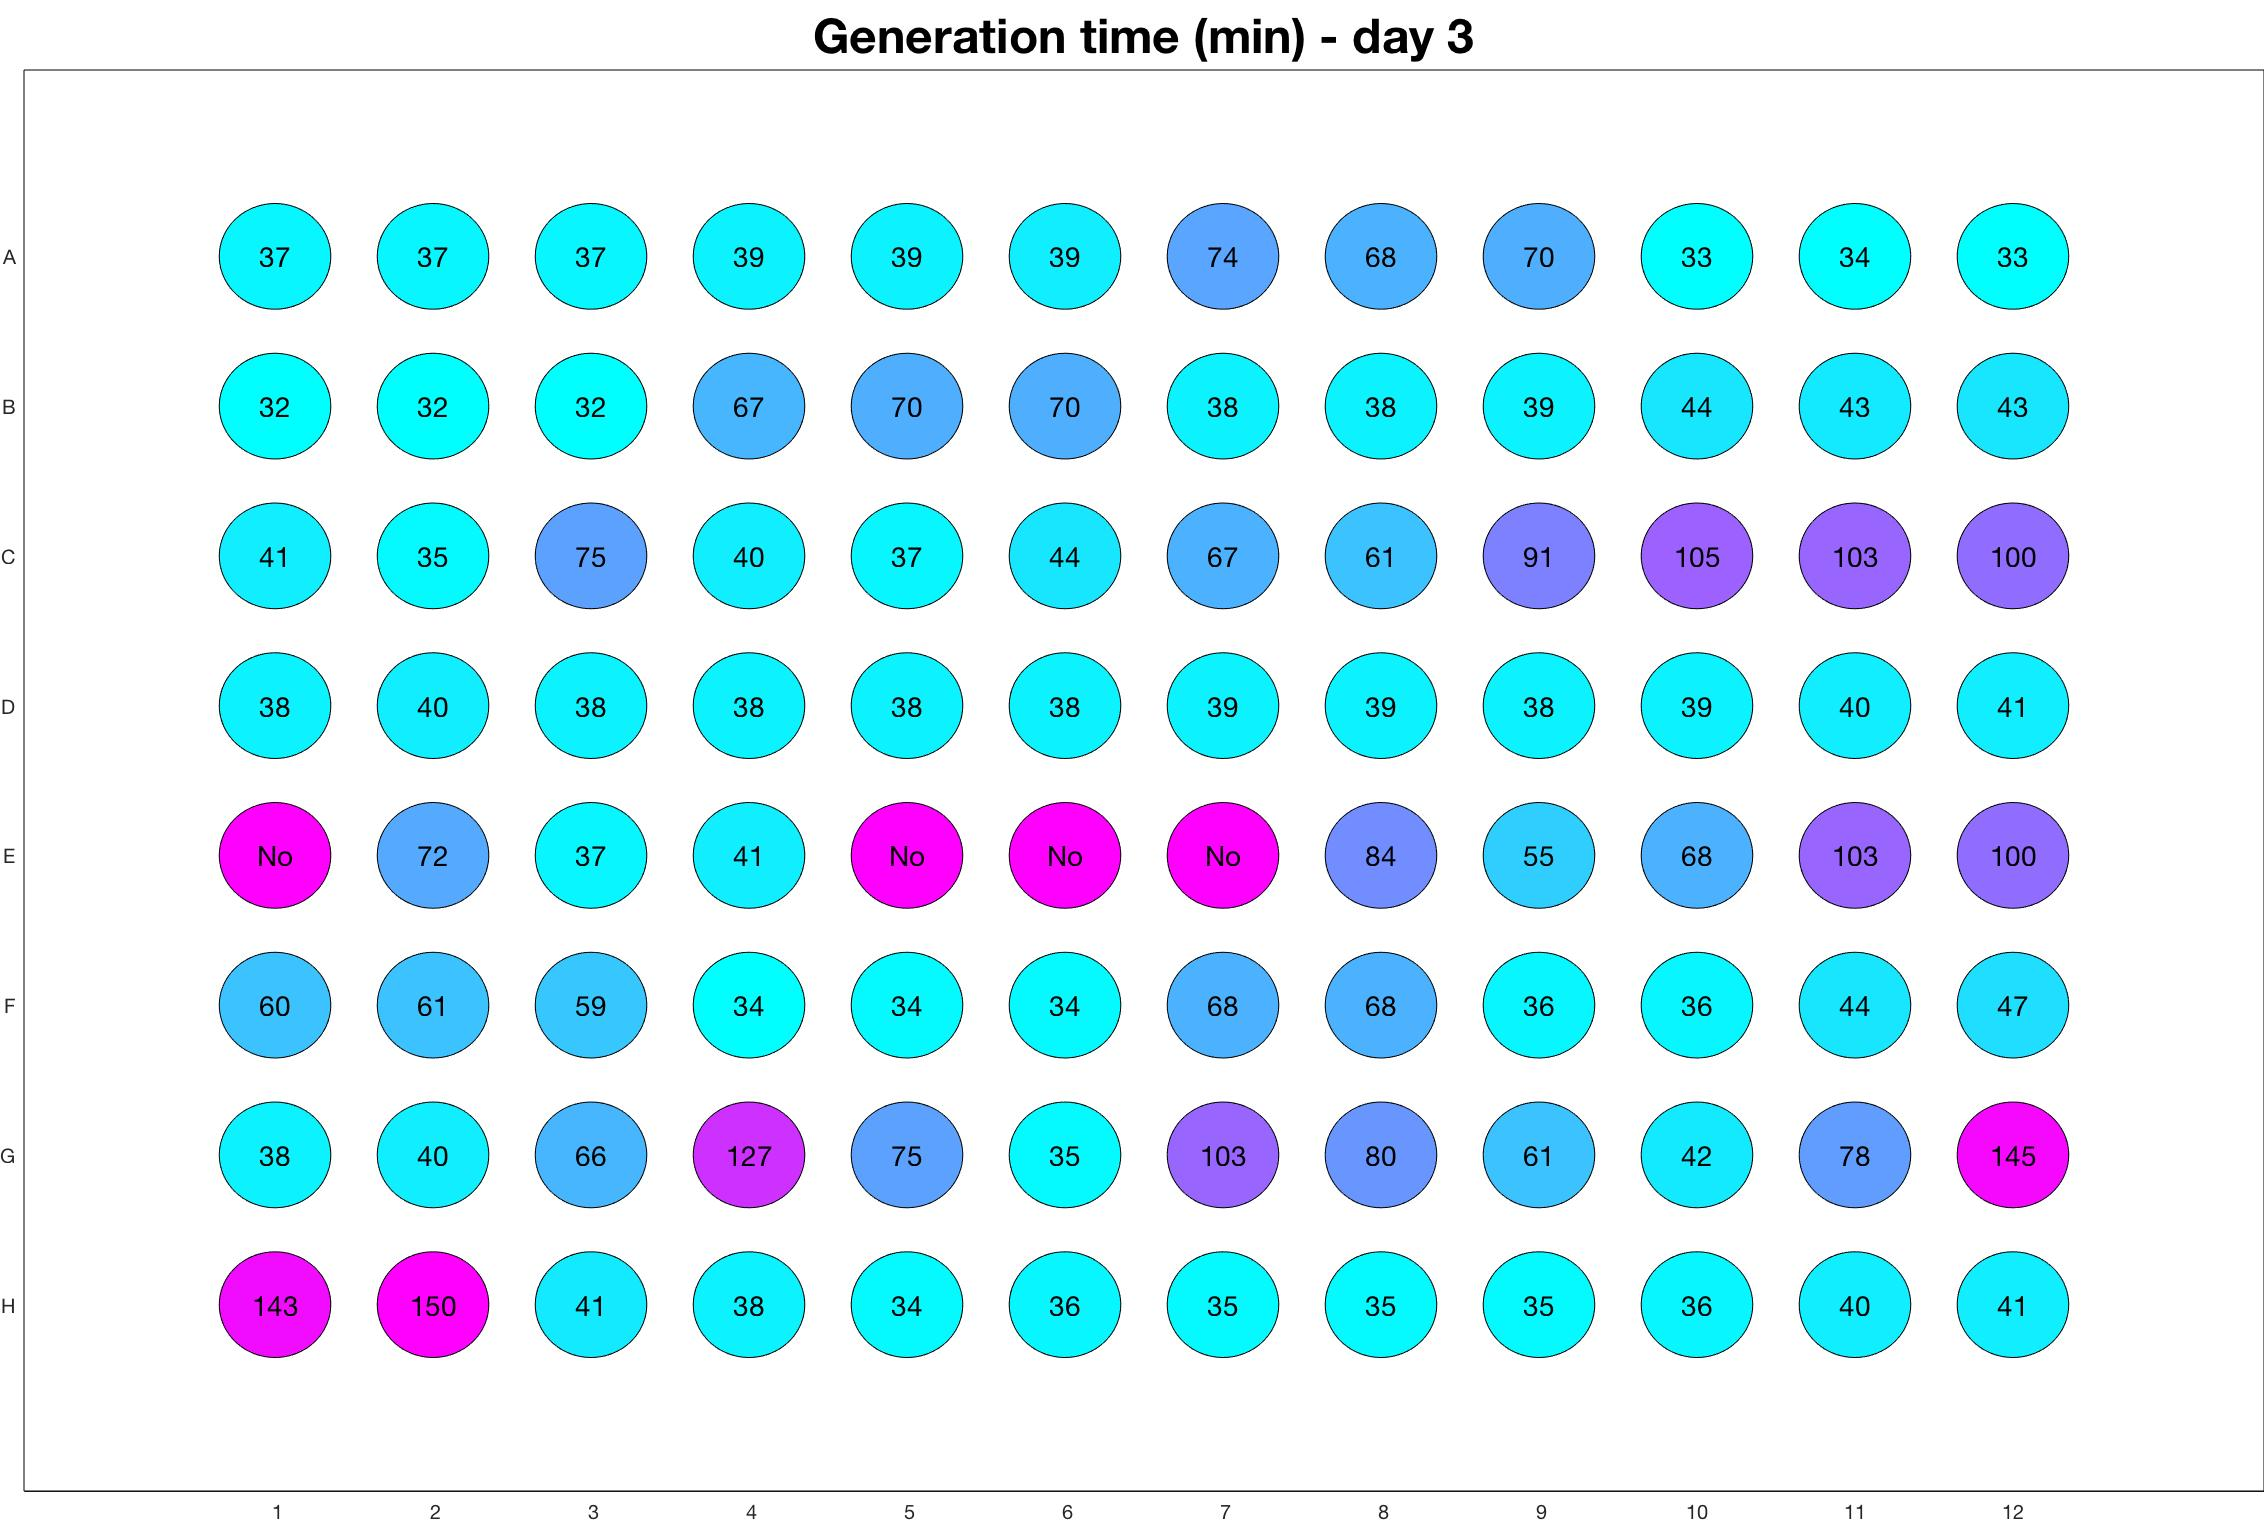 Generation time for day - 3.jpg